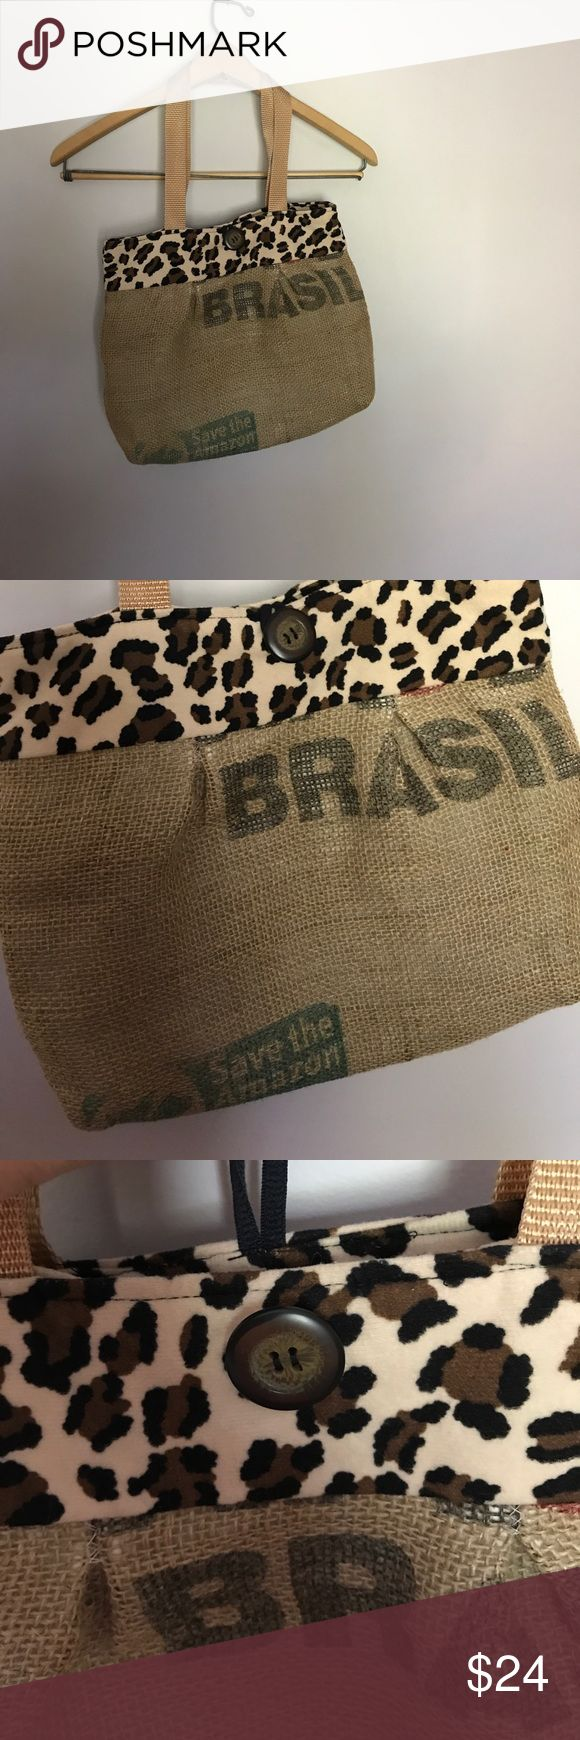 Upscaled Burlap Purse Coffee bean burlap sack upscaled into a darling purse. Fully lined with leopard print felt, a large side pocket inside and button with loophole latch. Like new!  Go green...buy Posh! Bags